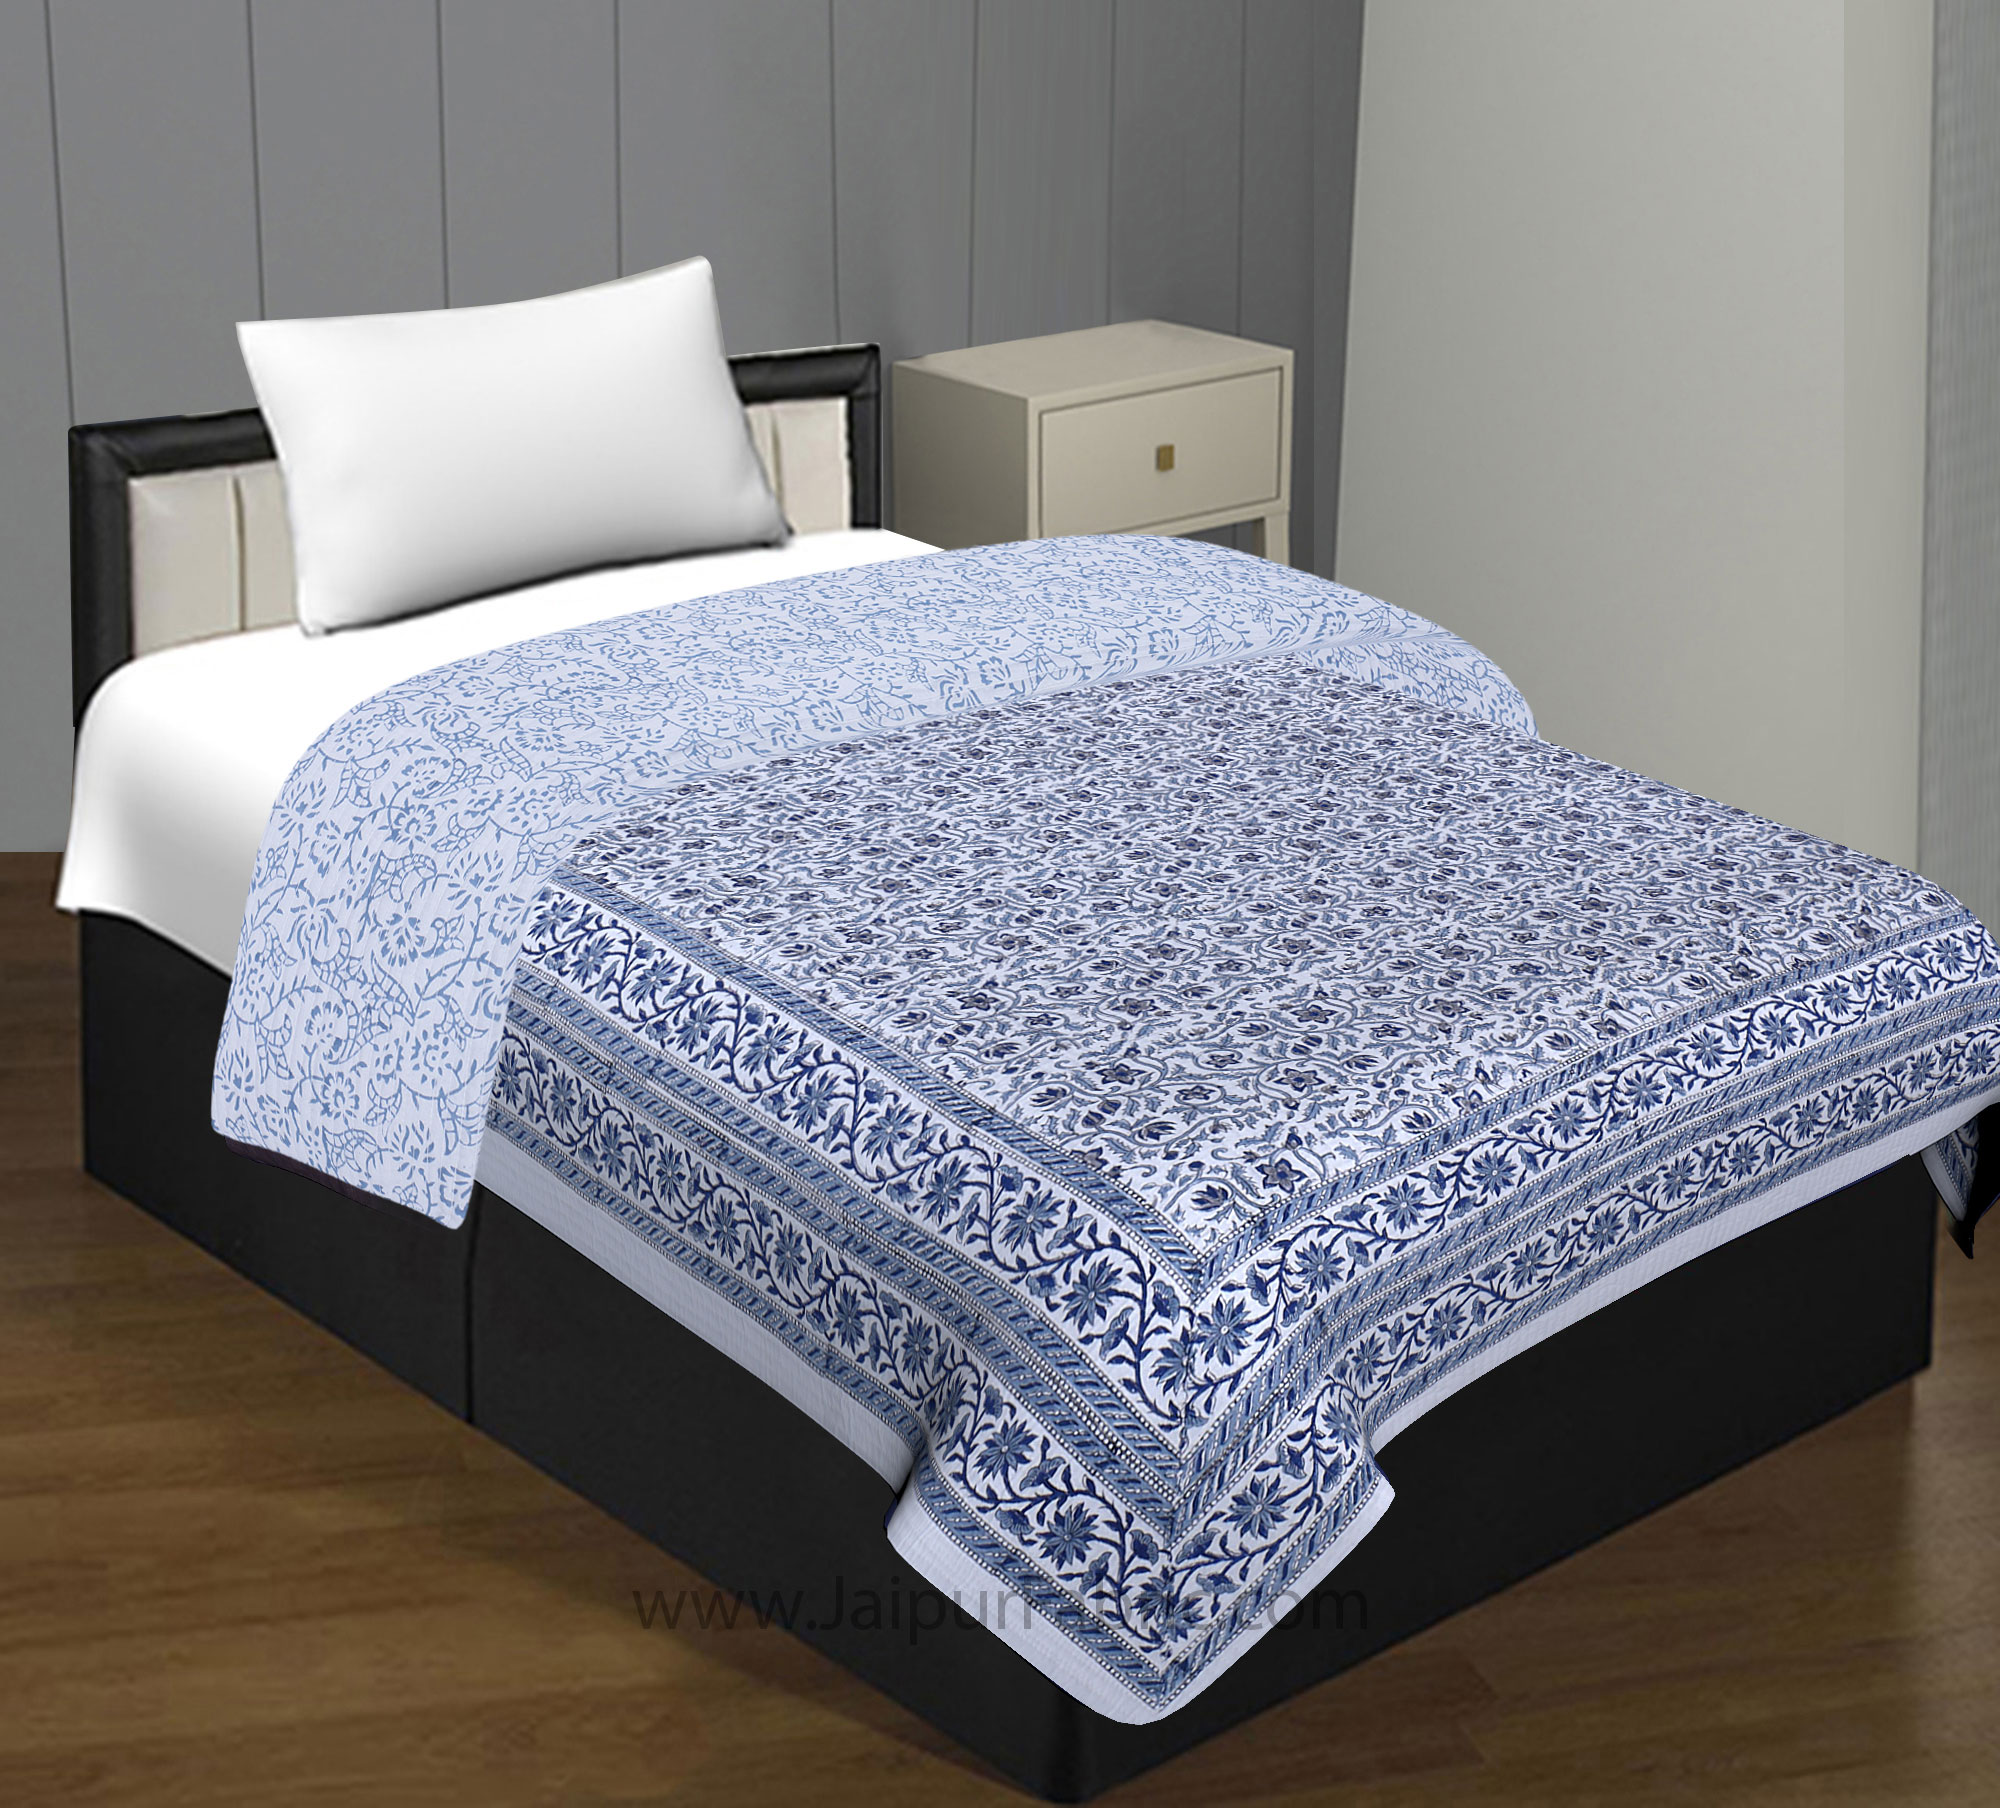 Royal Hand Block Single Bed Comforter